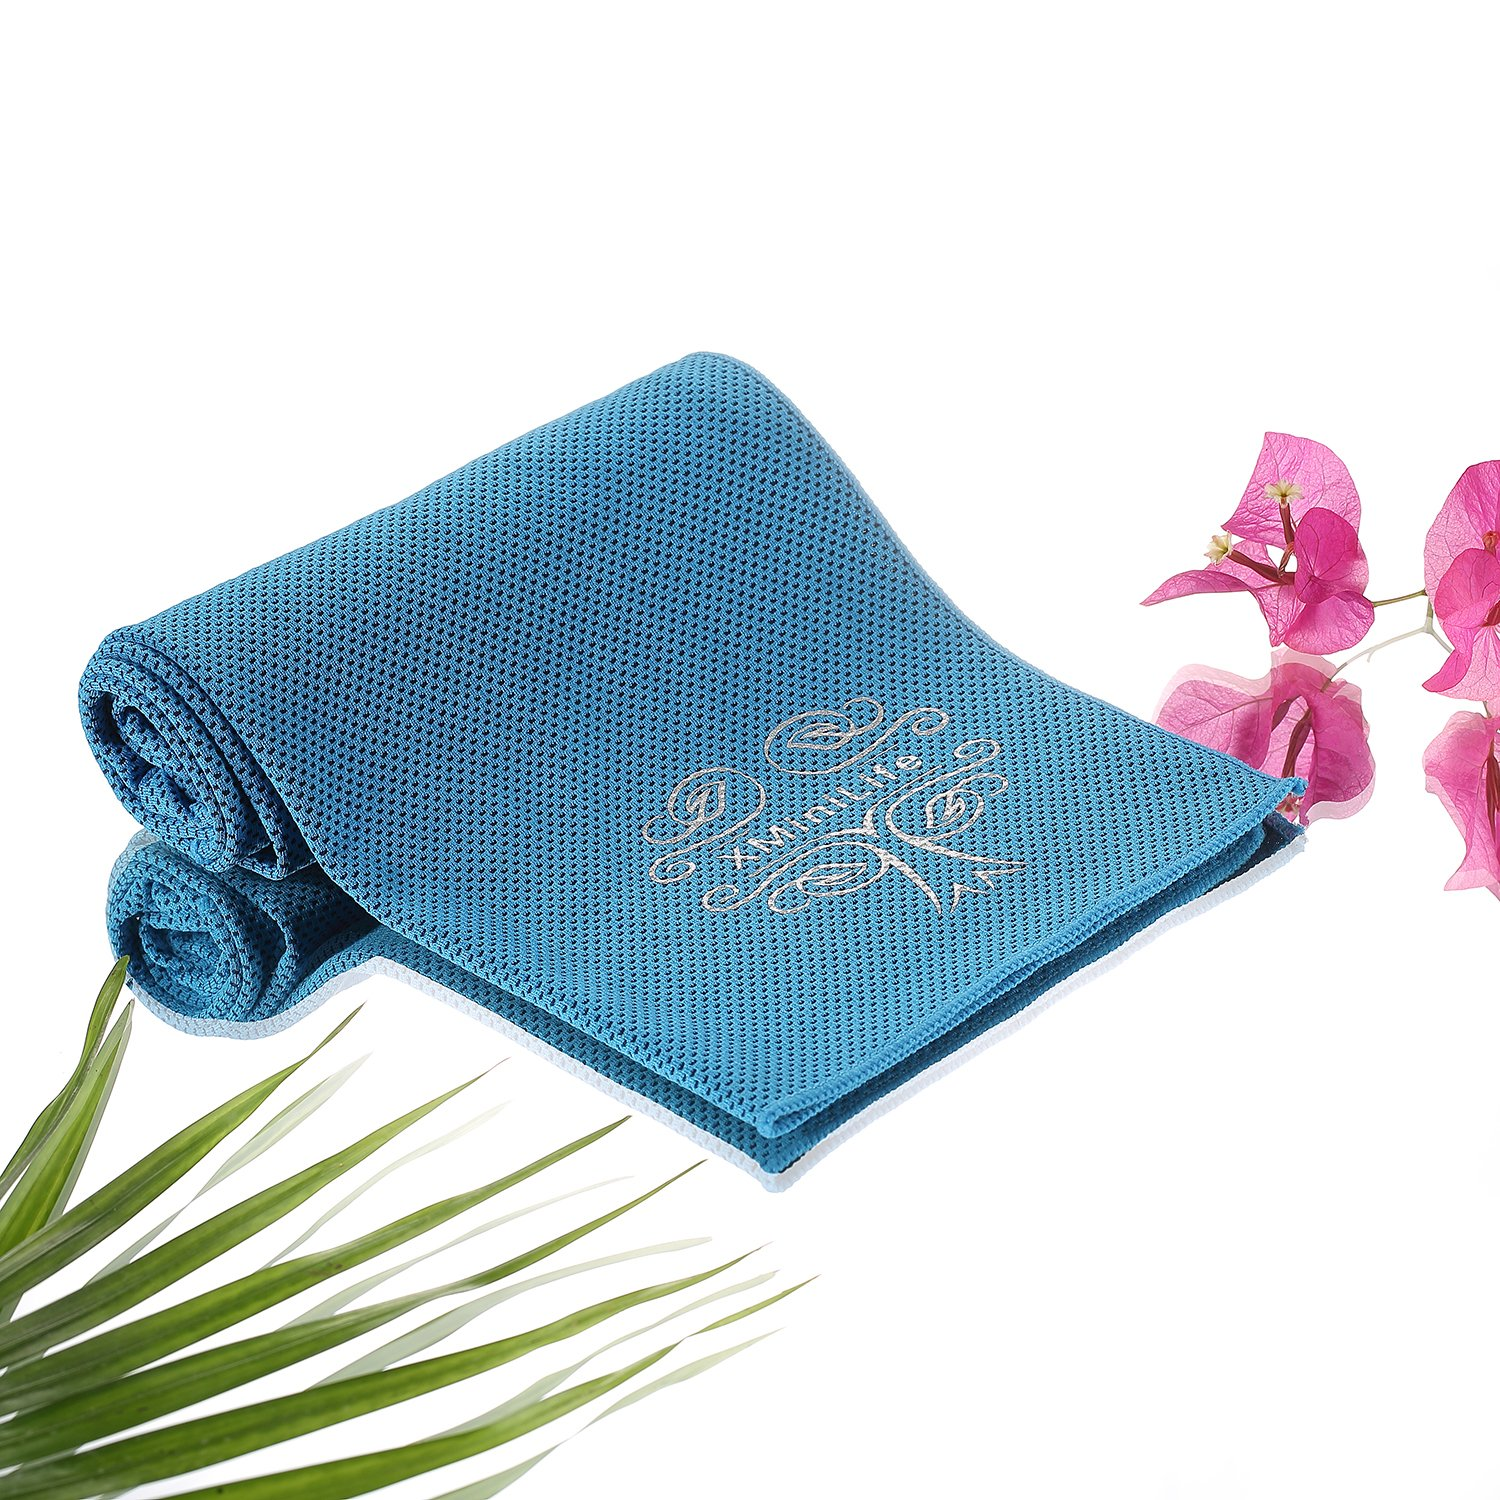 XMiniLife Microfiber Cooling Towel for Men and Women Football Outdoor Sports Running Hiking Gym Yoga Pilates Travel Camping Fitness